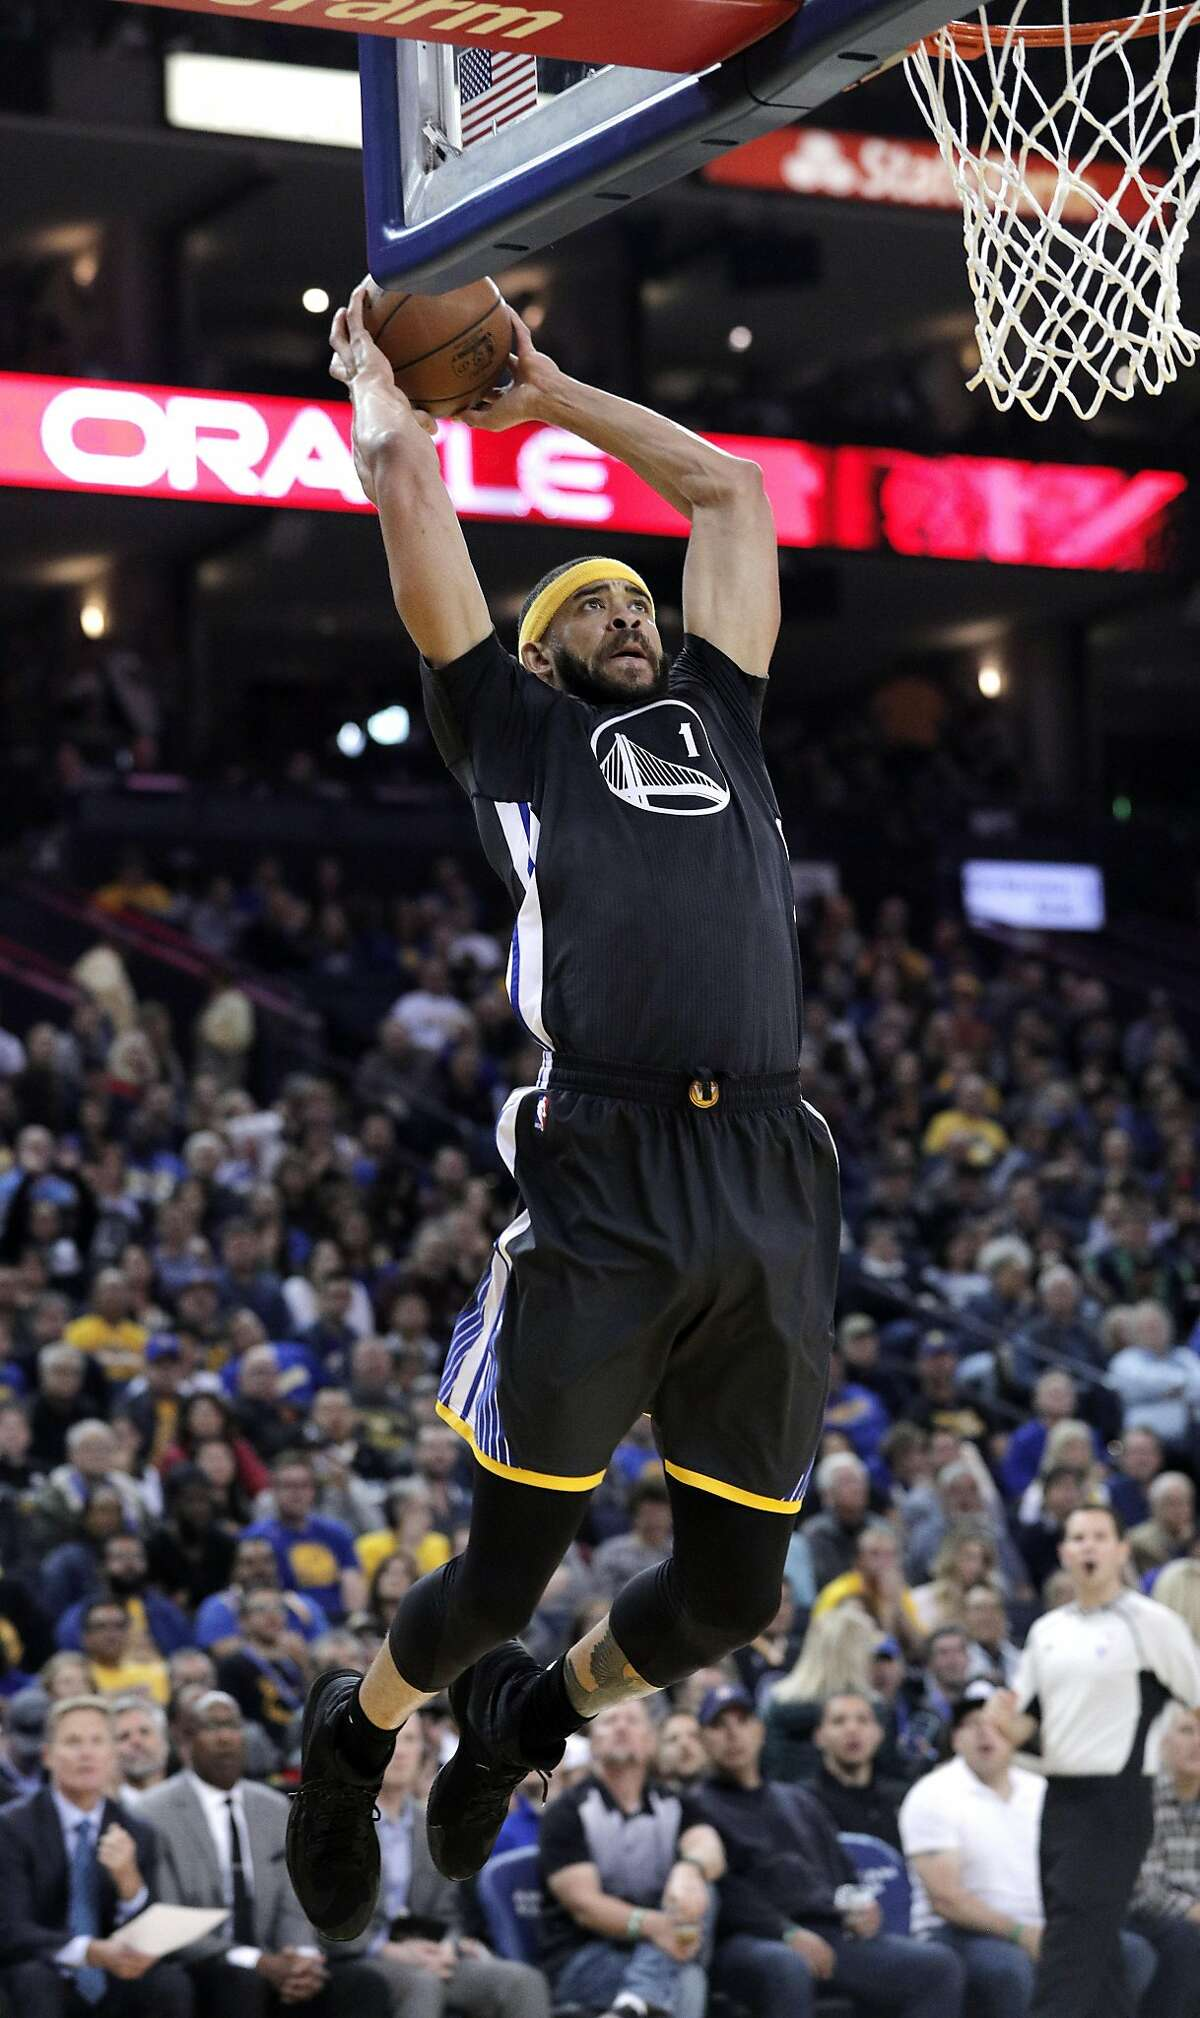 JaVale McGee (1) dunks in the first half as the Golden State Warriors played the New Orleans Pelicans at Oracle Arena in Oakland, Calif., on Saturday, April 8, 2017.